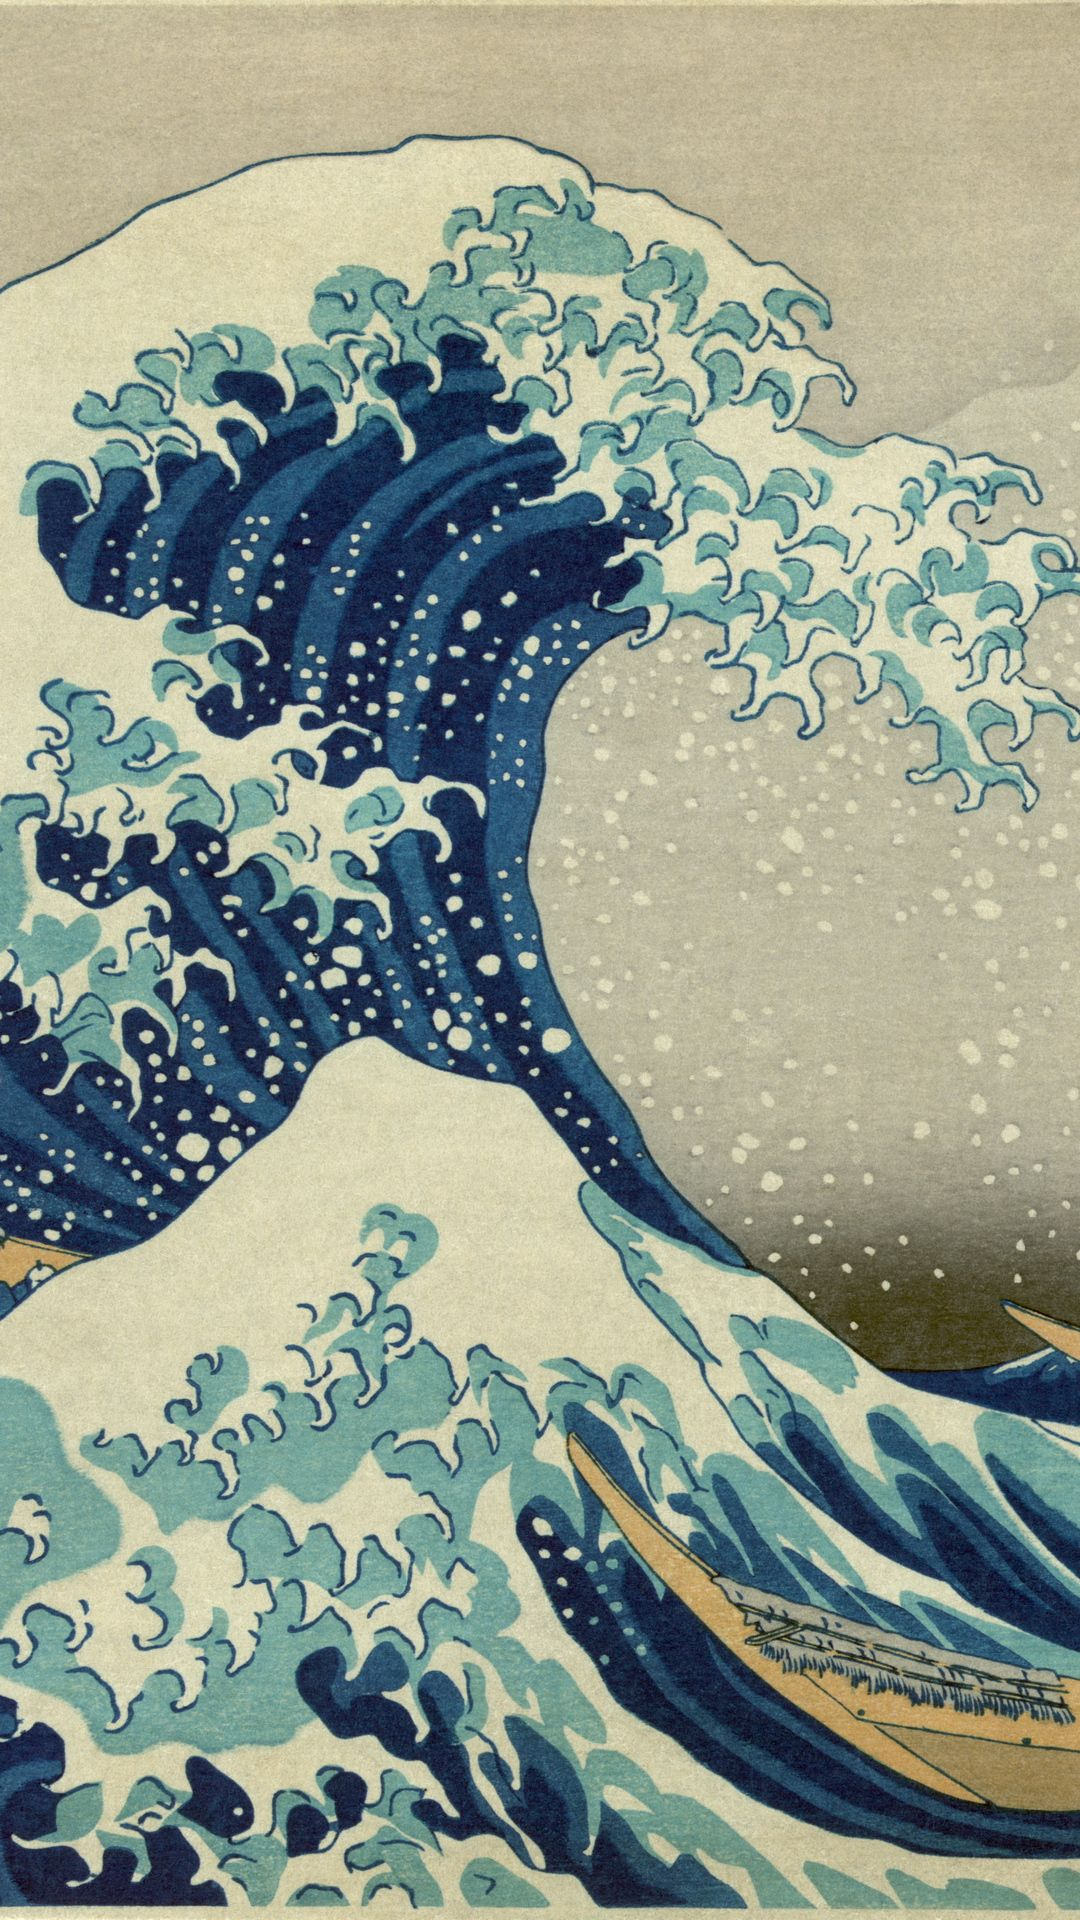 TAP AND GET THE FREE APP! Art The Great Wave off Kanagawa